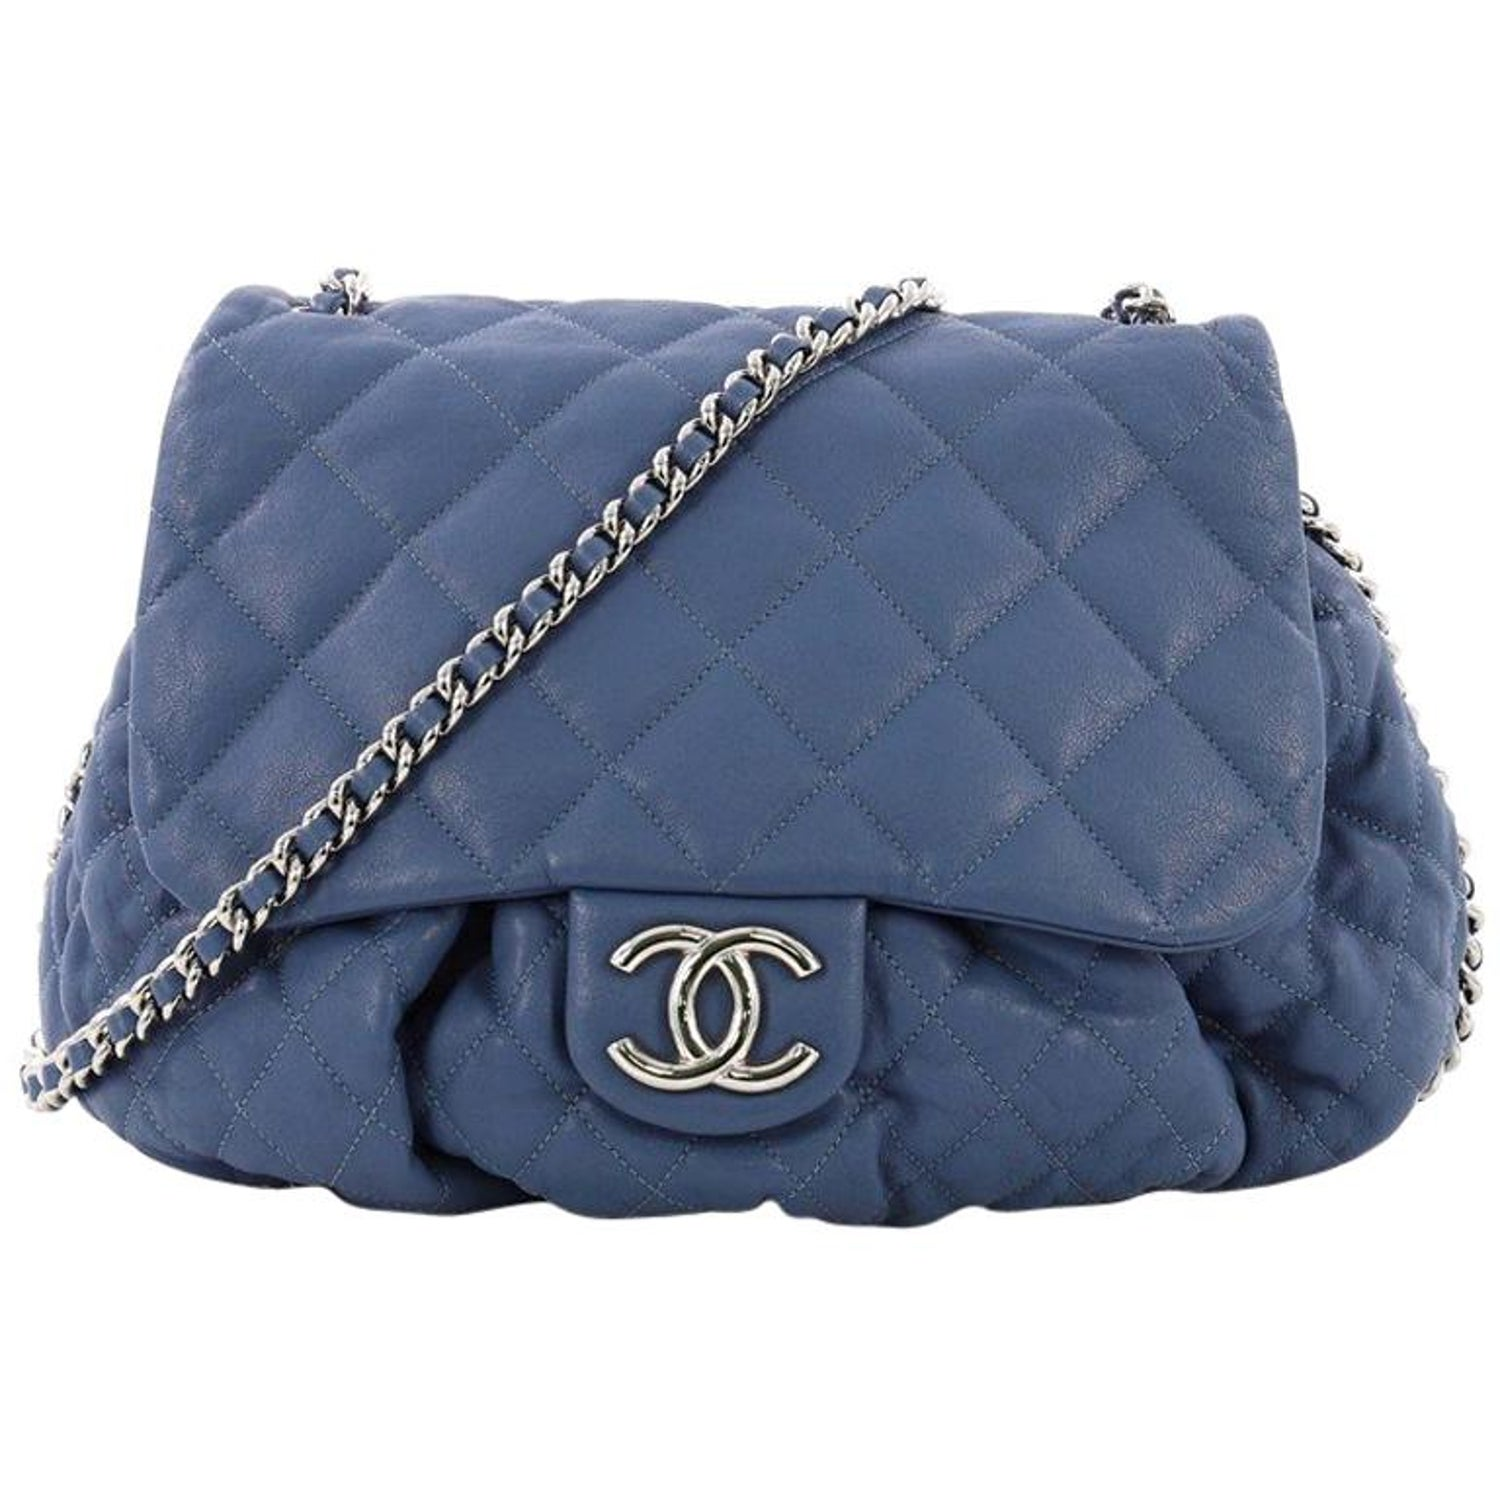 0790fca248fa Chanel Chain Around Flap Bag Quilted Leather Large at 1stdibs